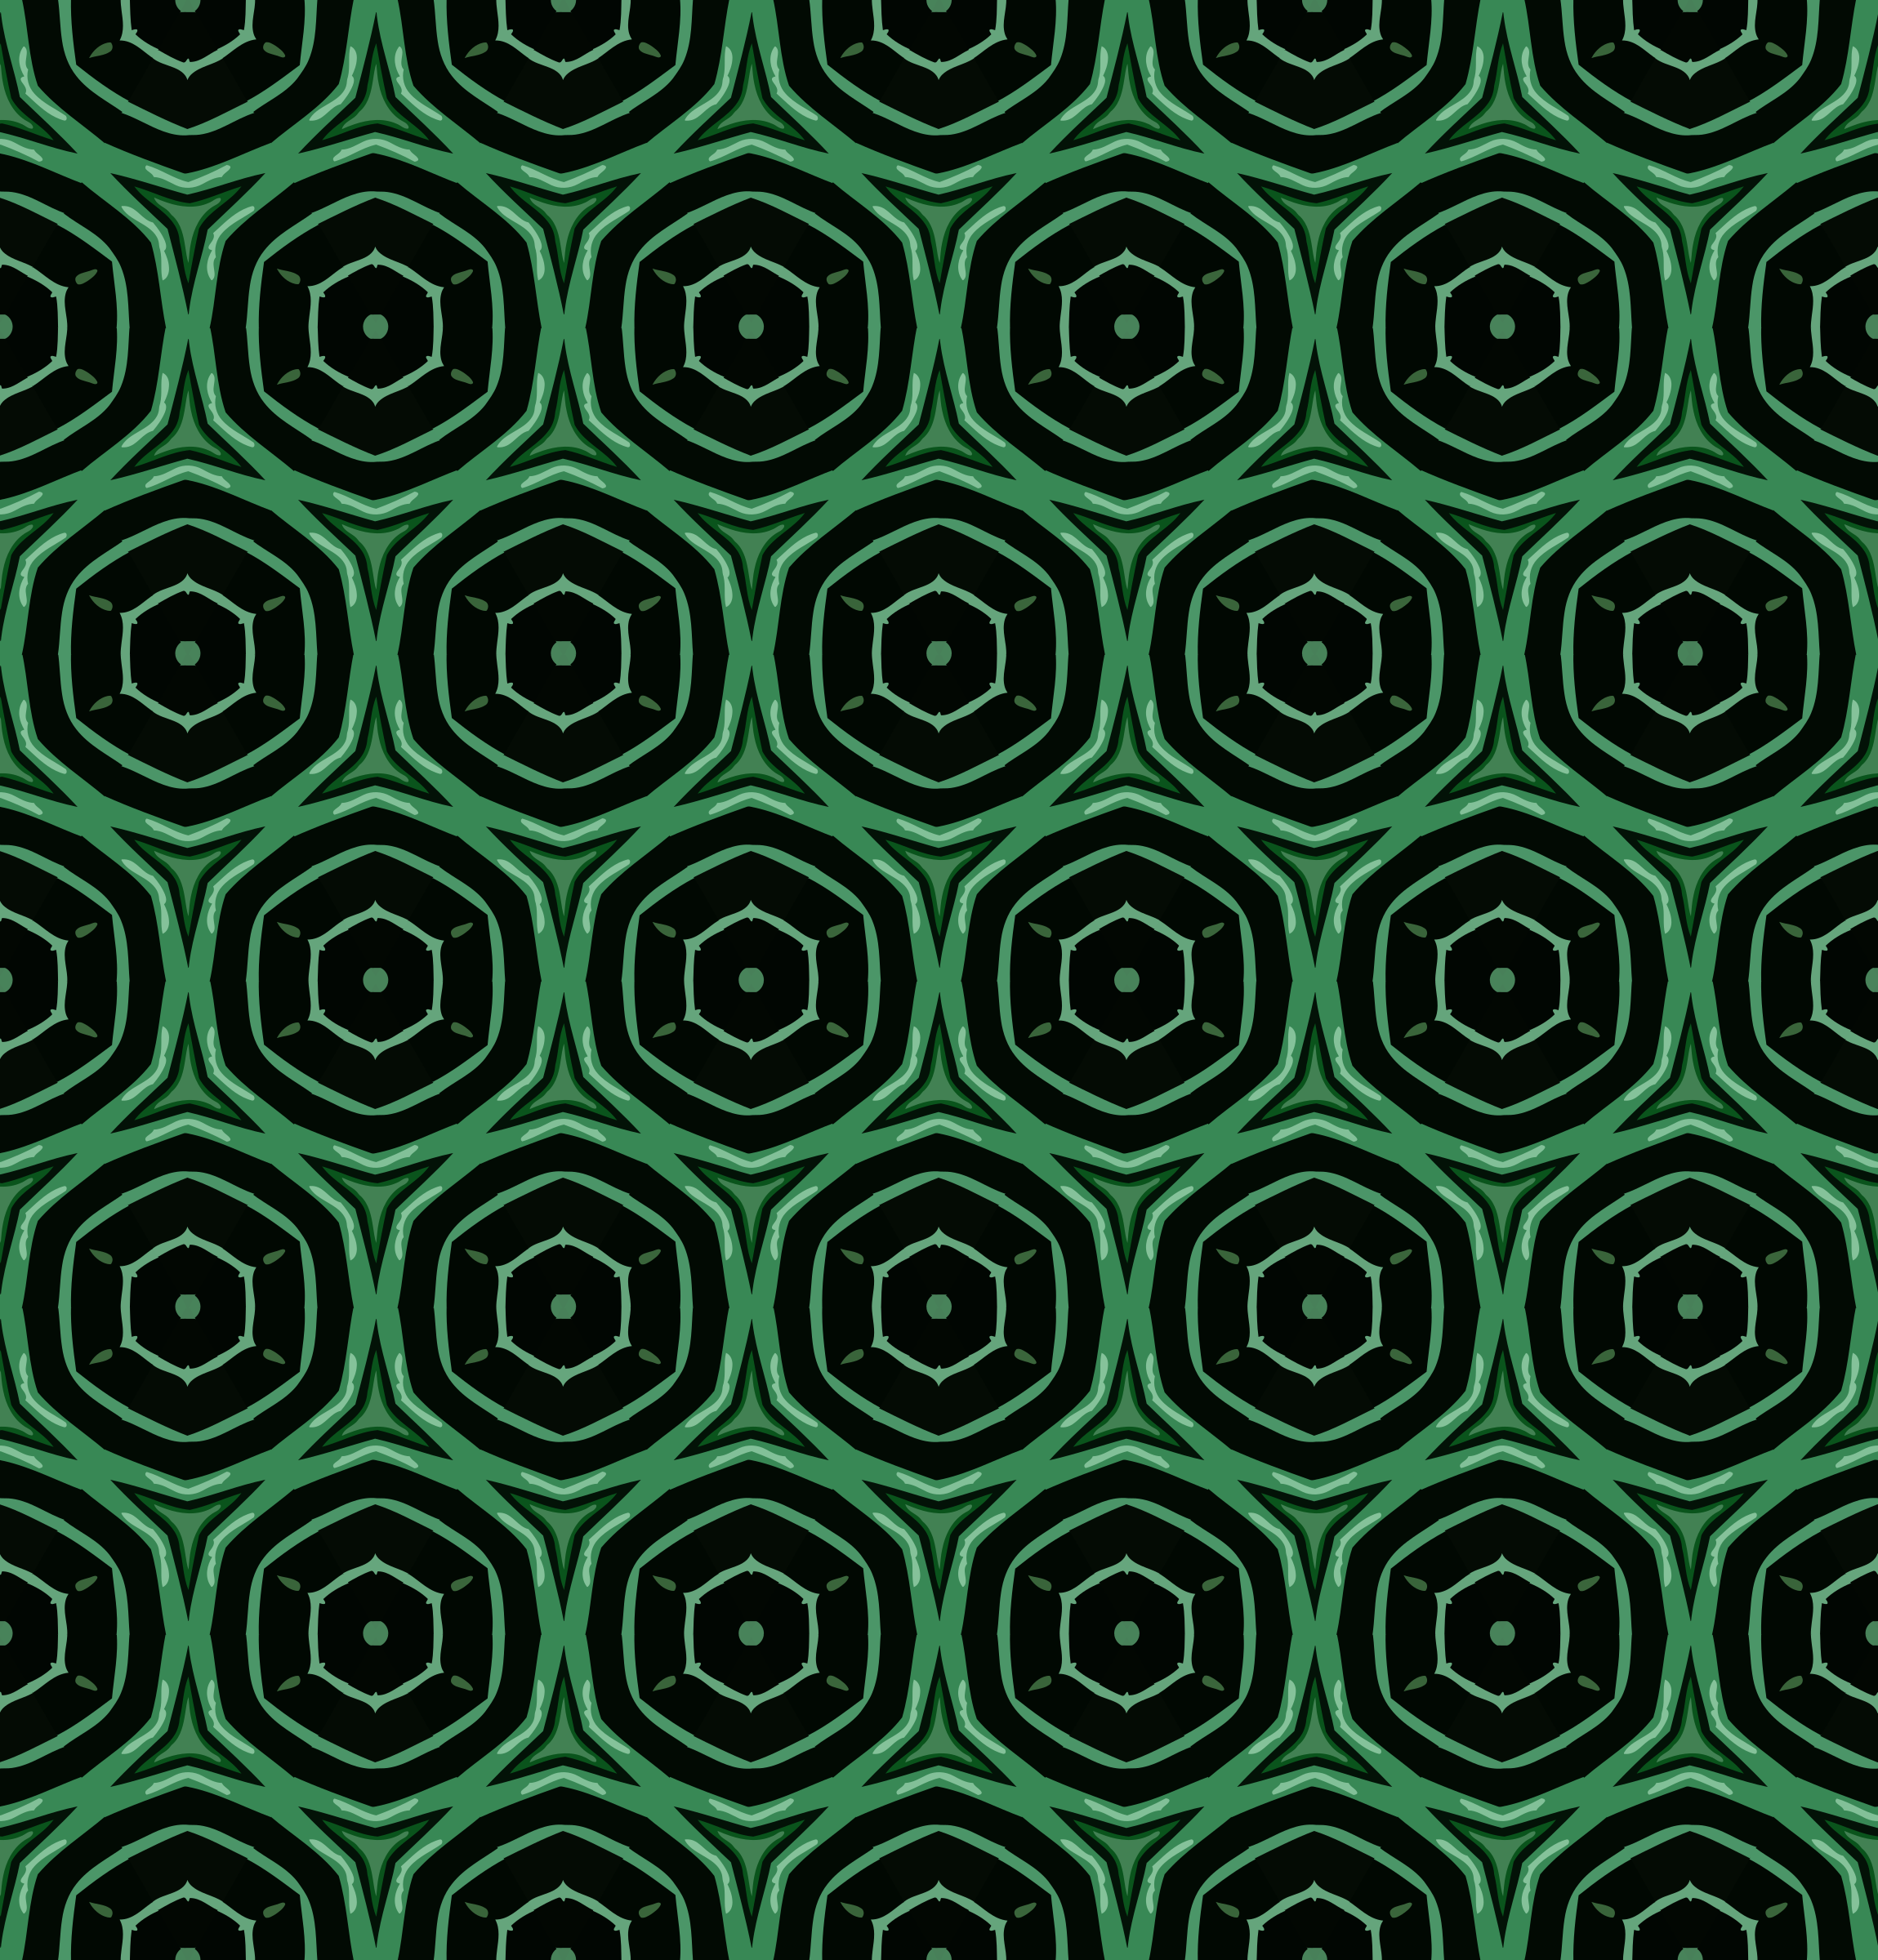 Background pattern 157 (colour 4) by Firkin